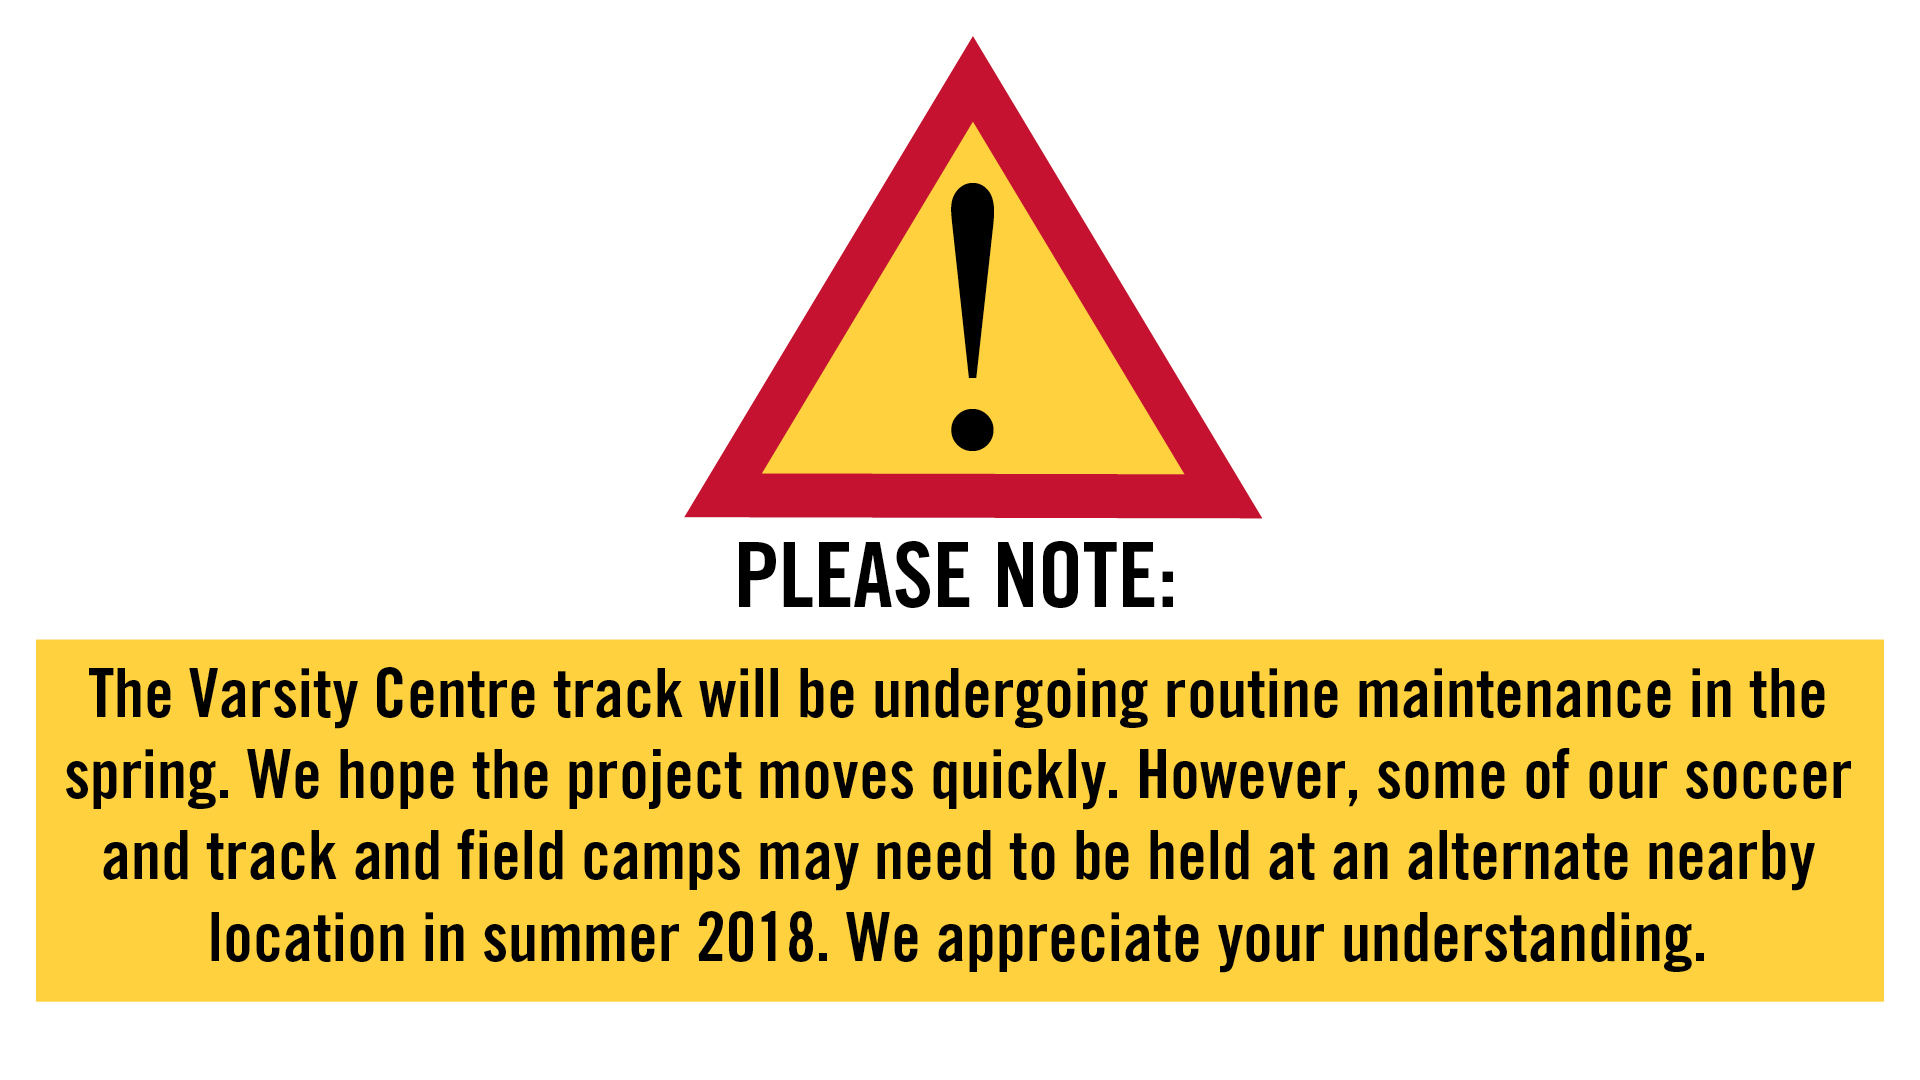 PLEASE NOTE: The Varsity Centre track will be undergoing routine maintenance in the spring. We hope the project moves quickly. However, some of our soccer and track and field camps may need to be held at an alternate nearby location in summer 2018. We appreciate your understanding. See www.campuoft.ca for details.